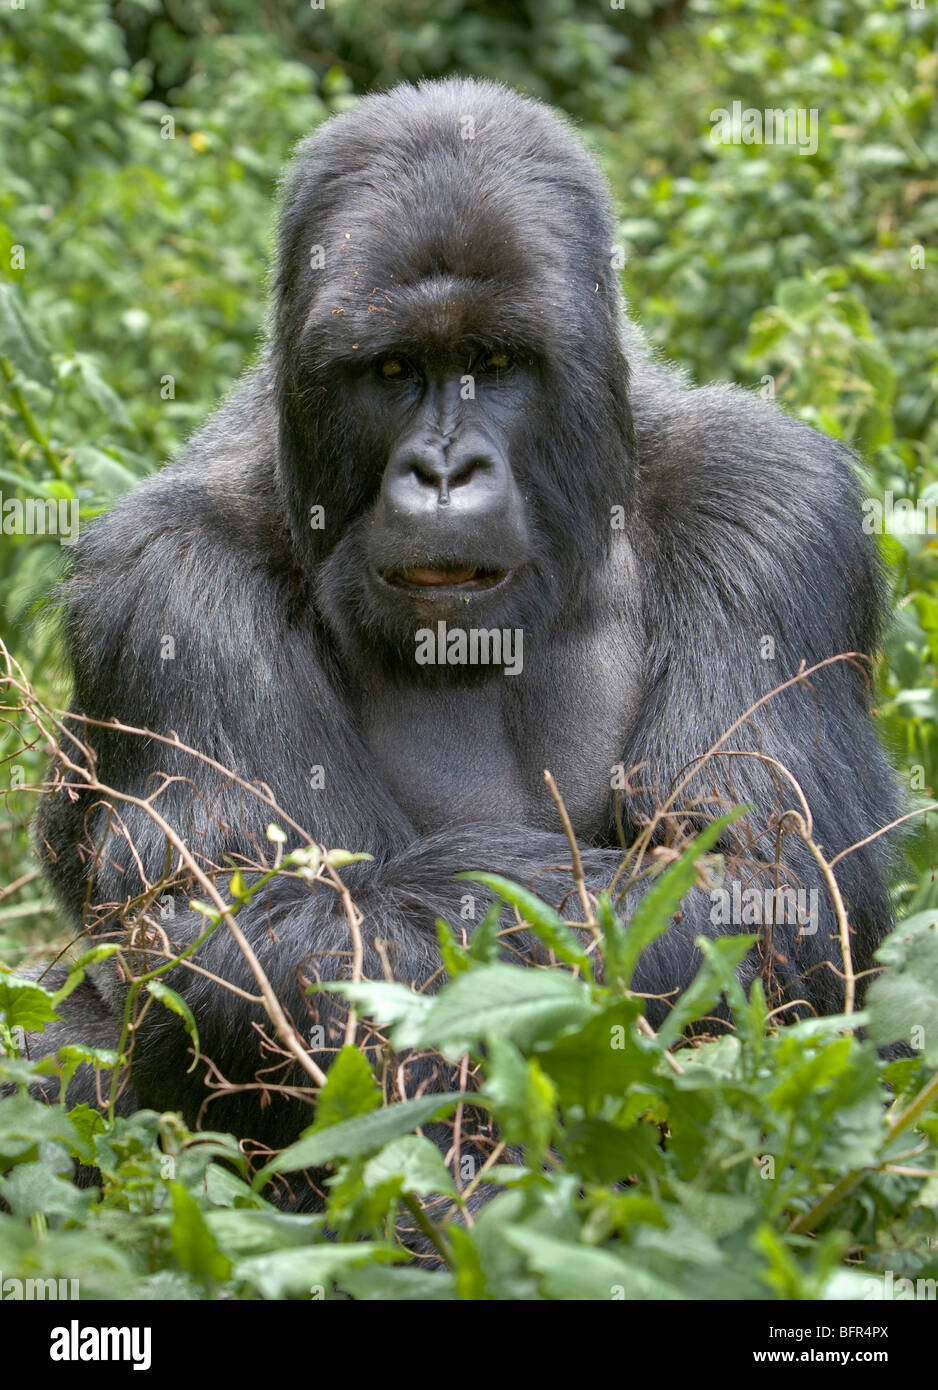 Mountain gorilla portrait - Stock Image